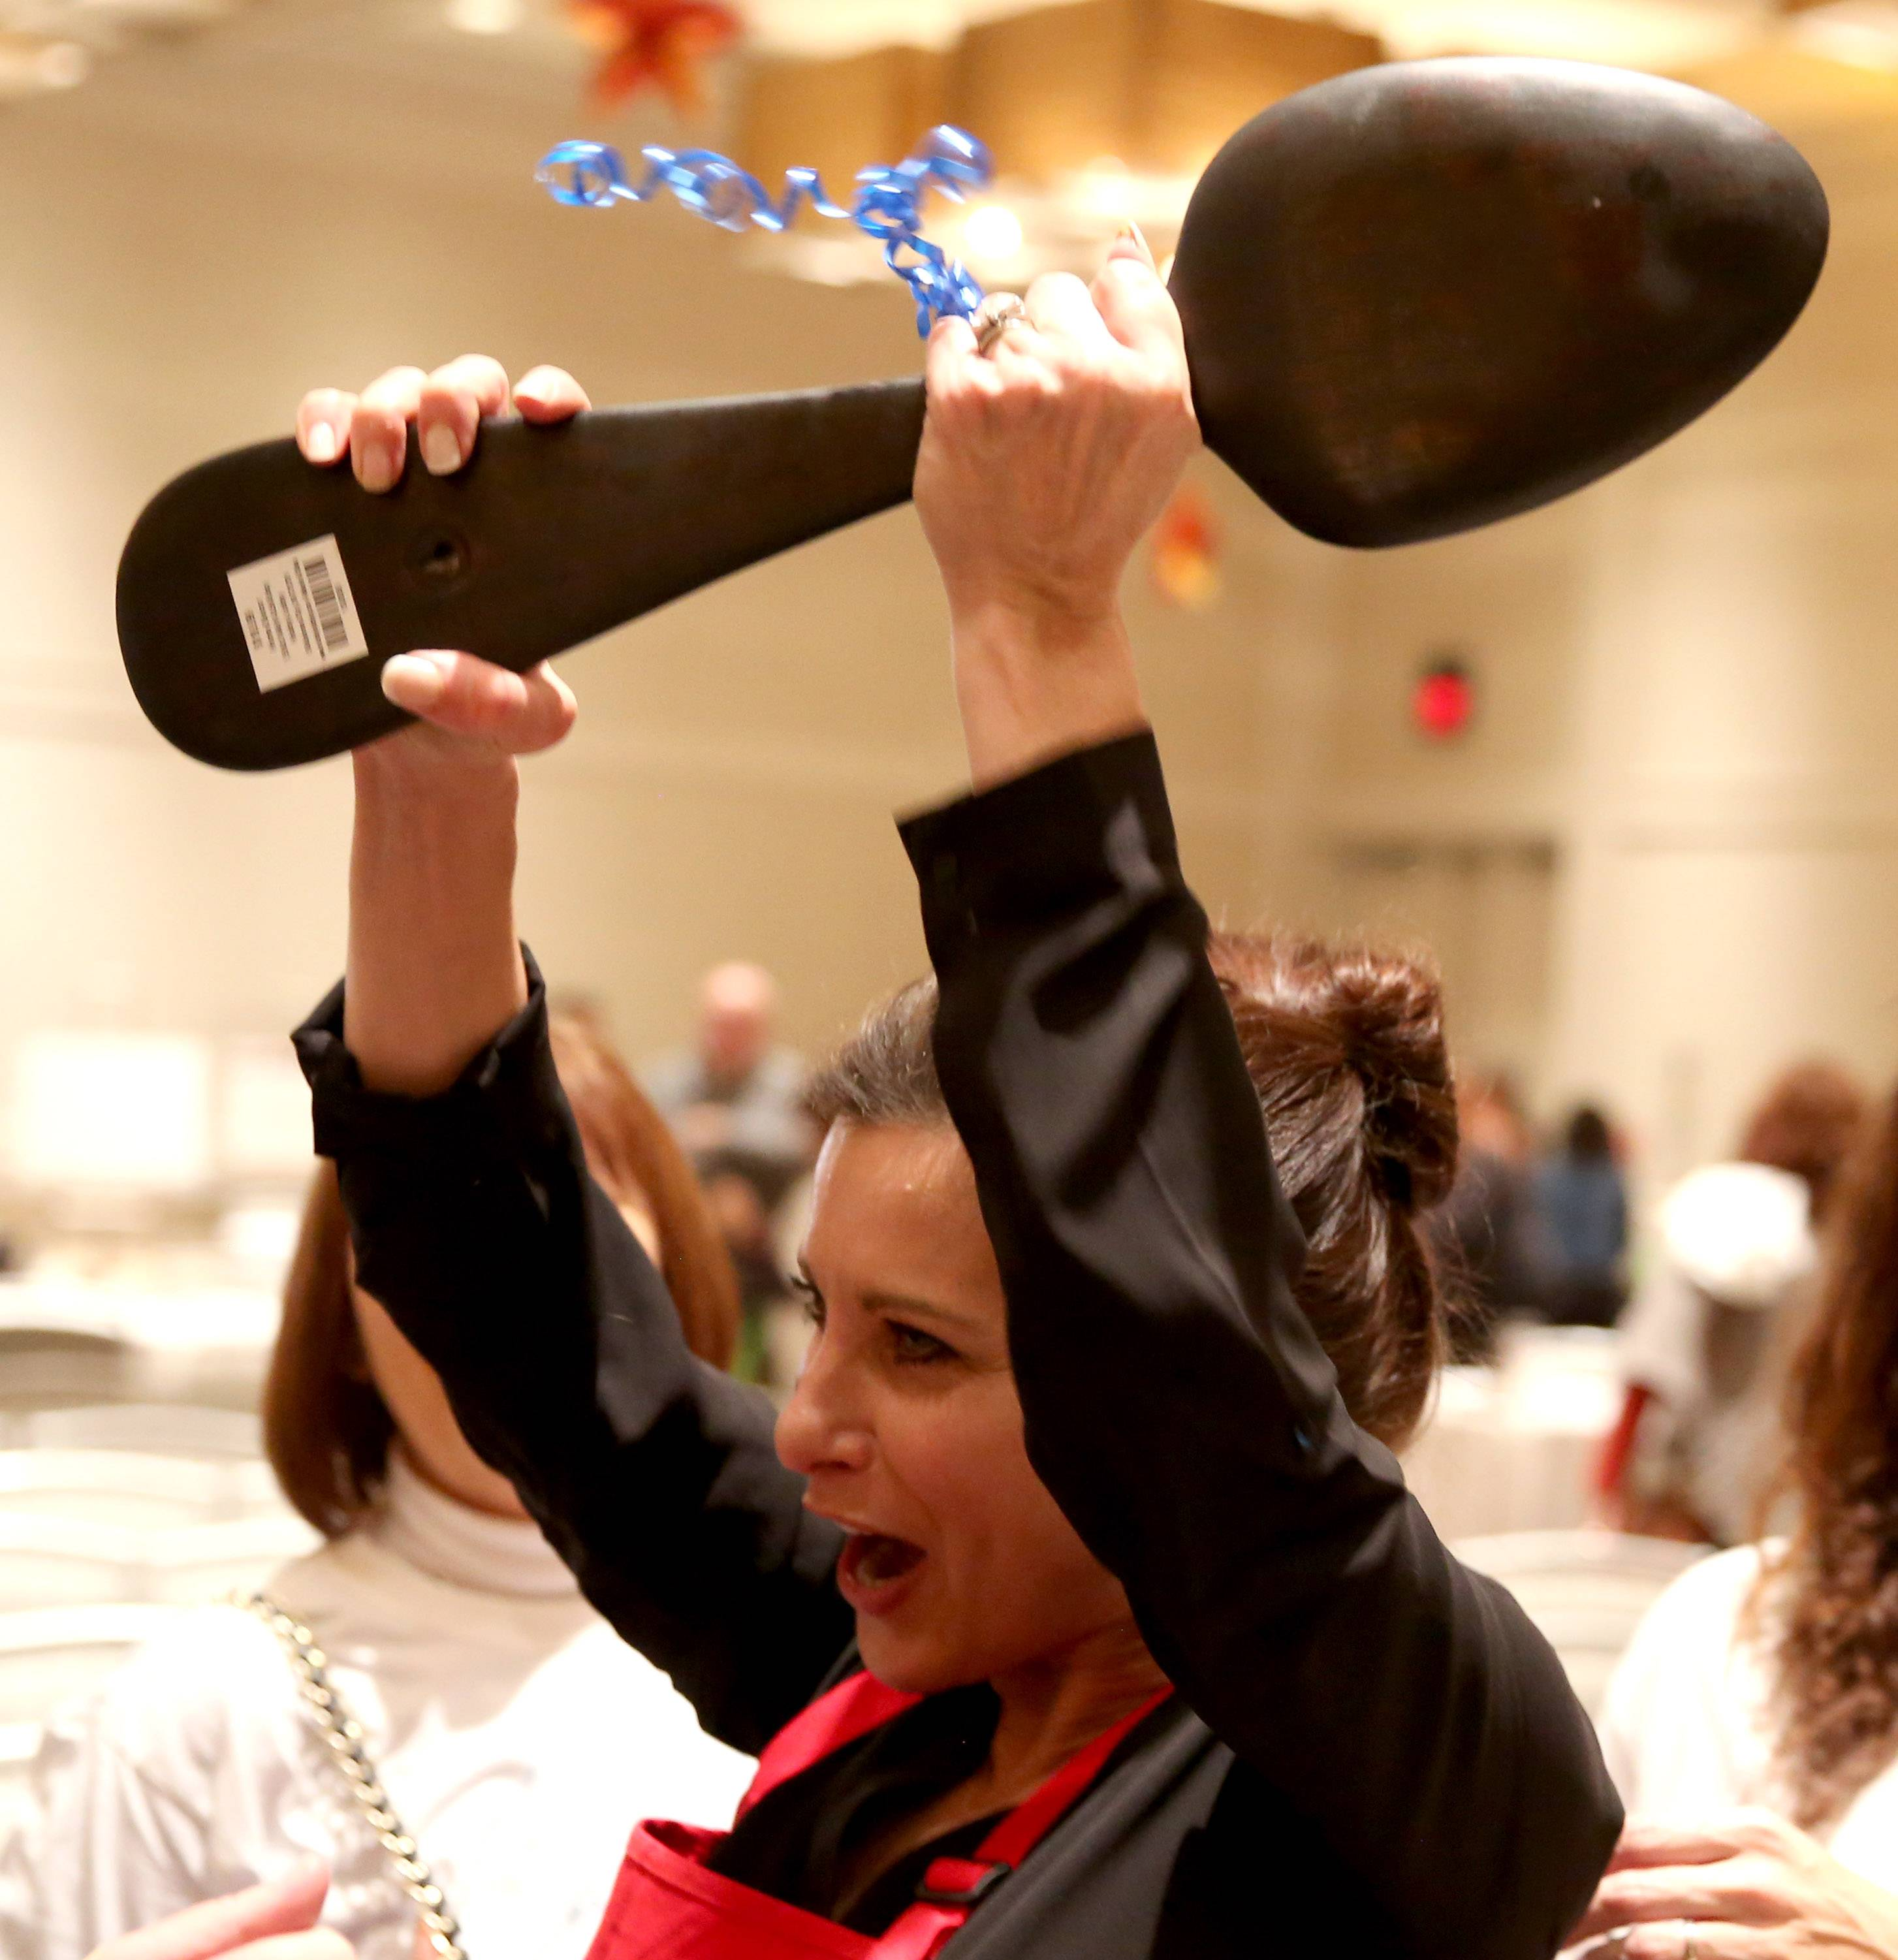 Elizabeth Schuttler of Inverness wins the 2017 Daily Herald Cook of the Week Challenge following a live cooking competition at the Westin Chicago Northwest in Itasca. Schuttler parades through well wishers with her wooden spoon trophy.